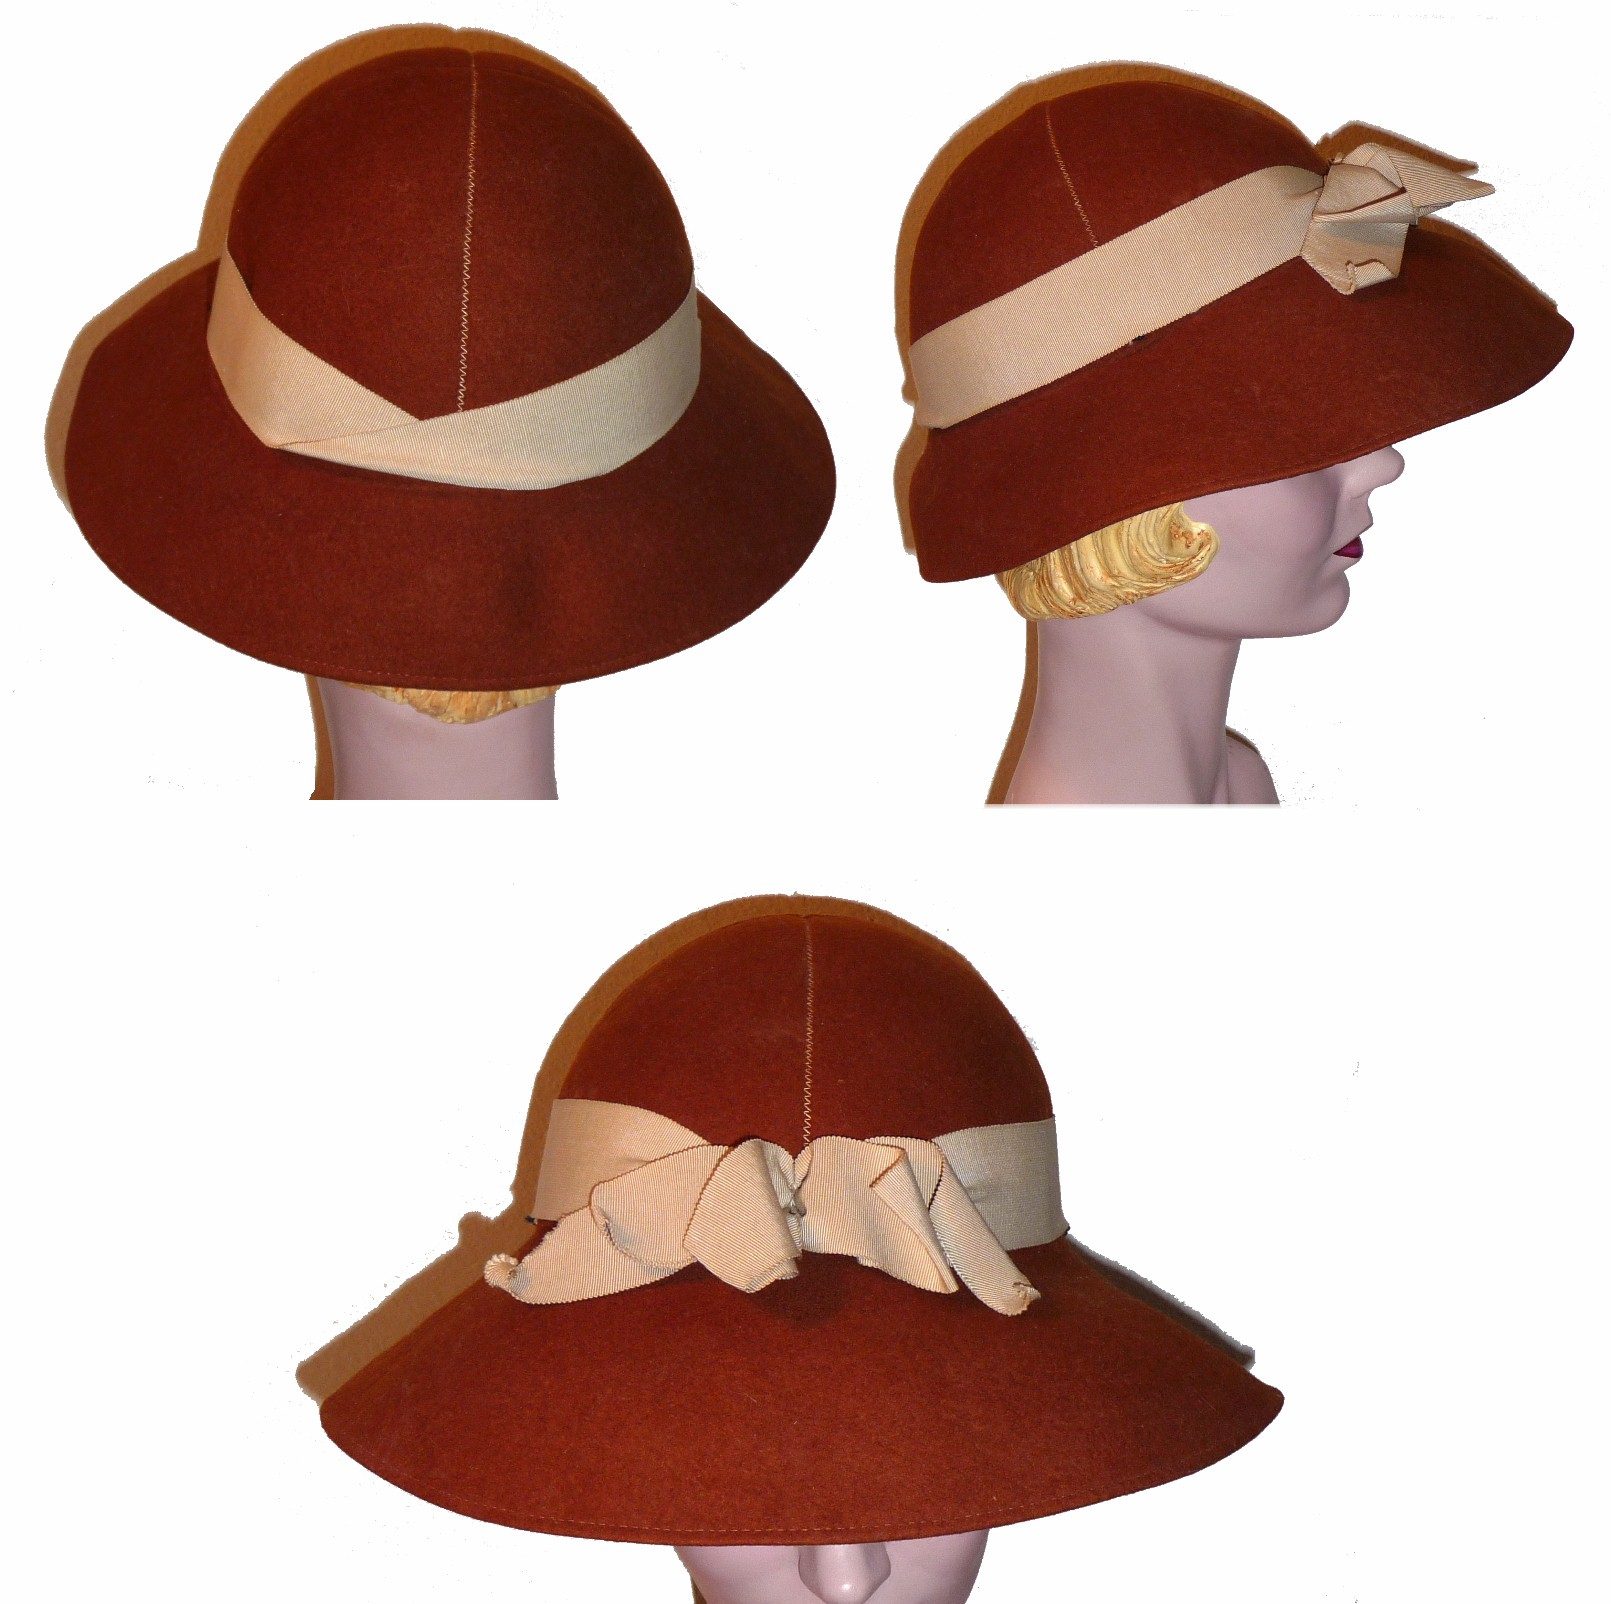 dating vintage womens hats Find and save ideas about 1940s hats on pinterest | see more ideas about 40s fashion, vintage hats and 1940s fashion women.